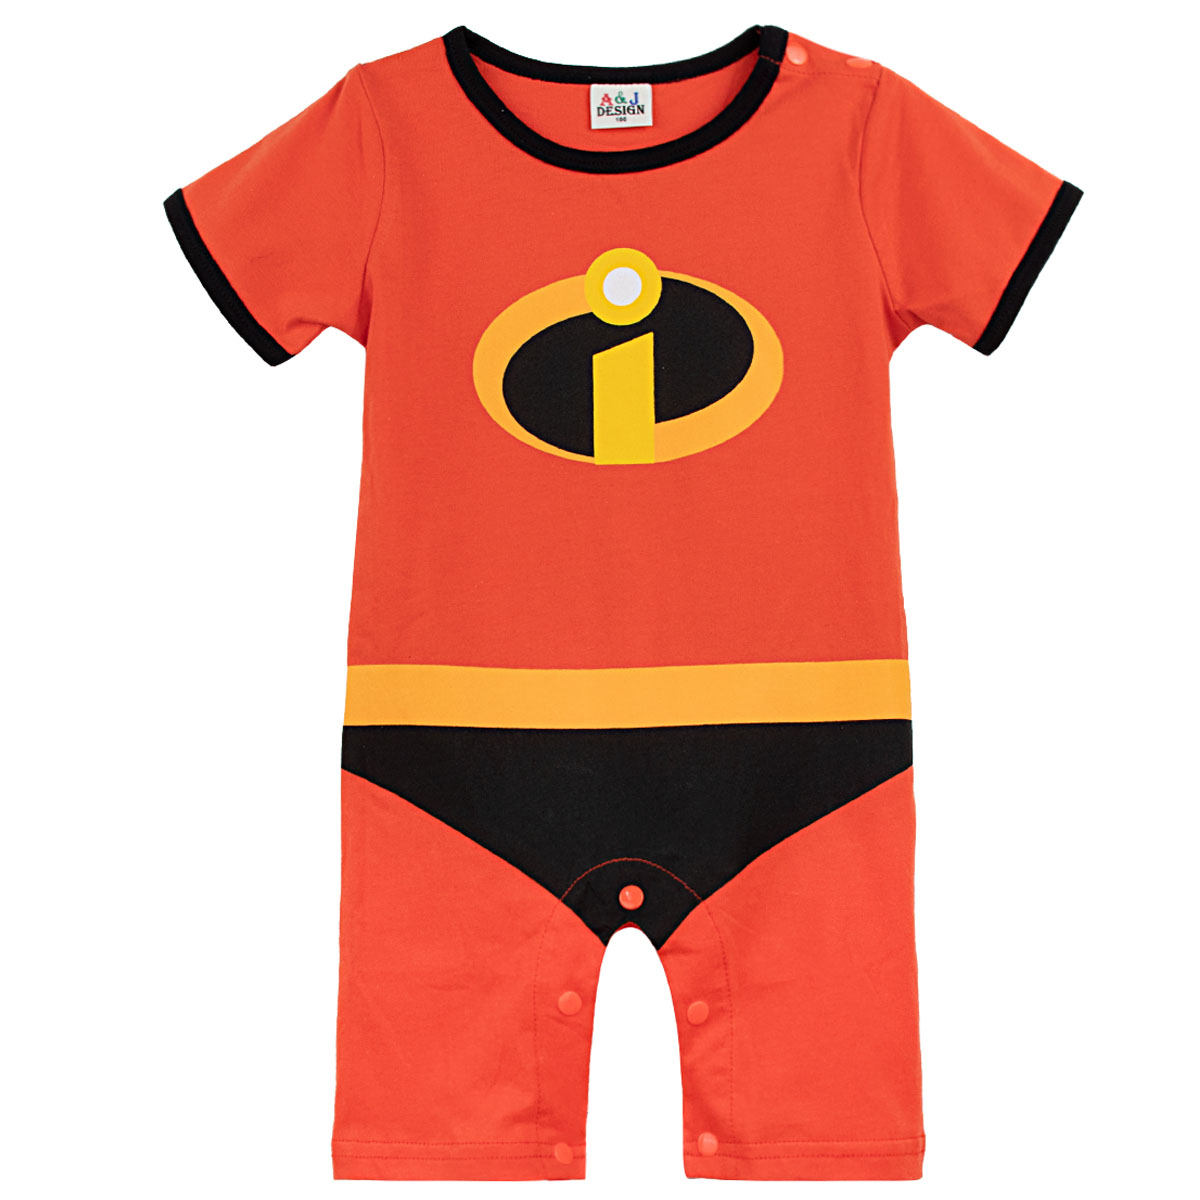 Baby Boys Girls Cosplay The Incredibles 2   Romper   Infant Superhero Cartoon Jumpsuit Newborn Print Cotton Playsuit Summer Clothes